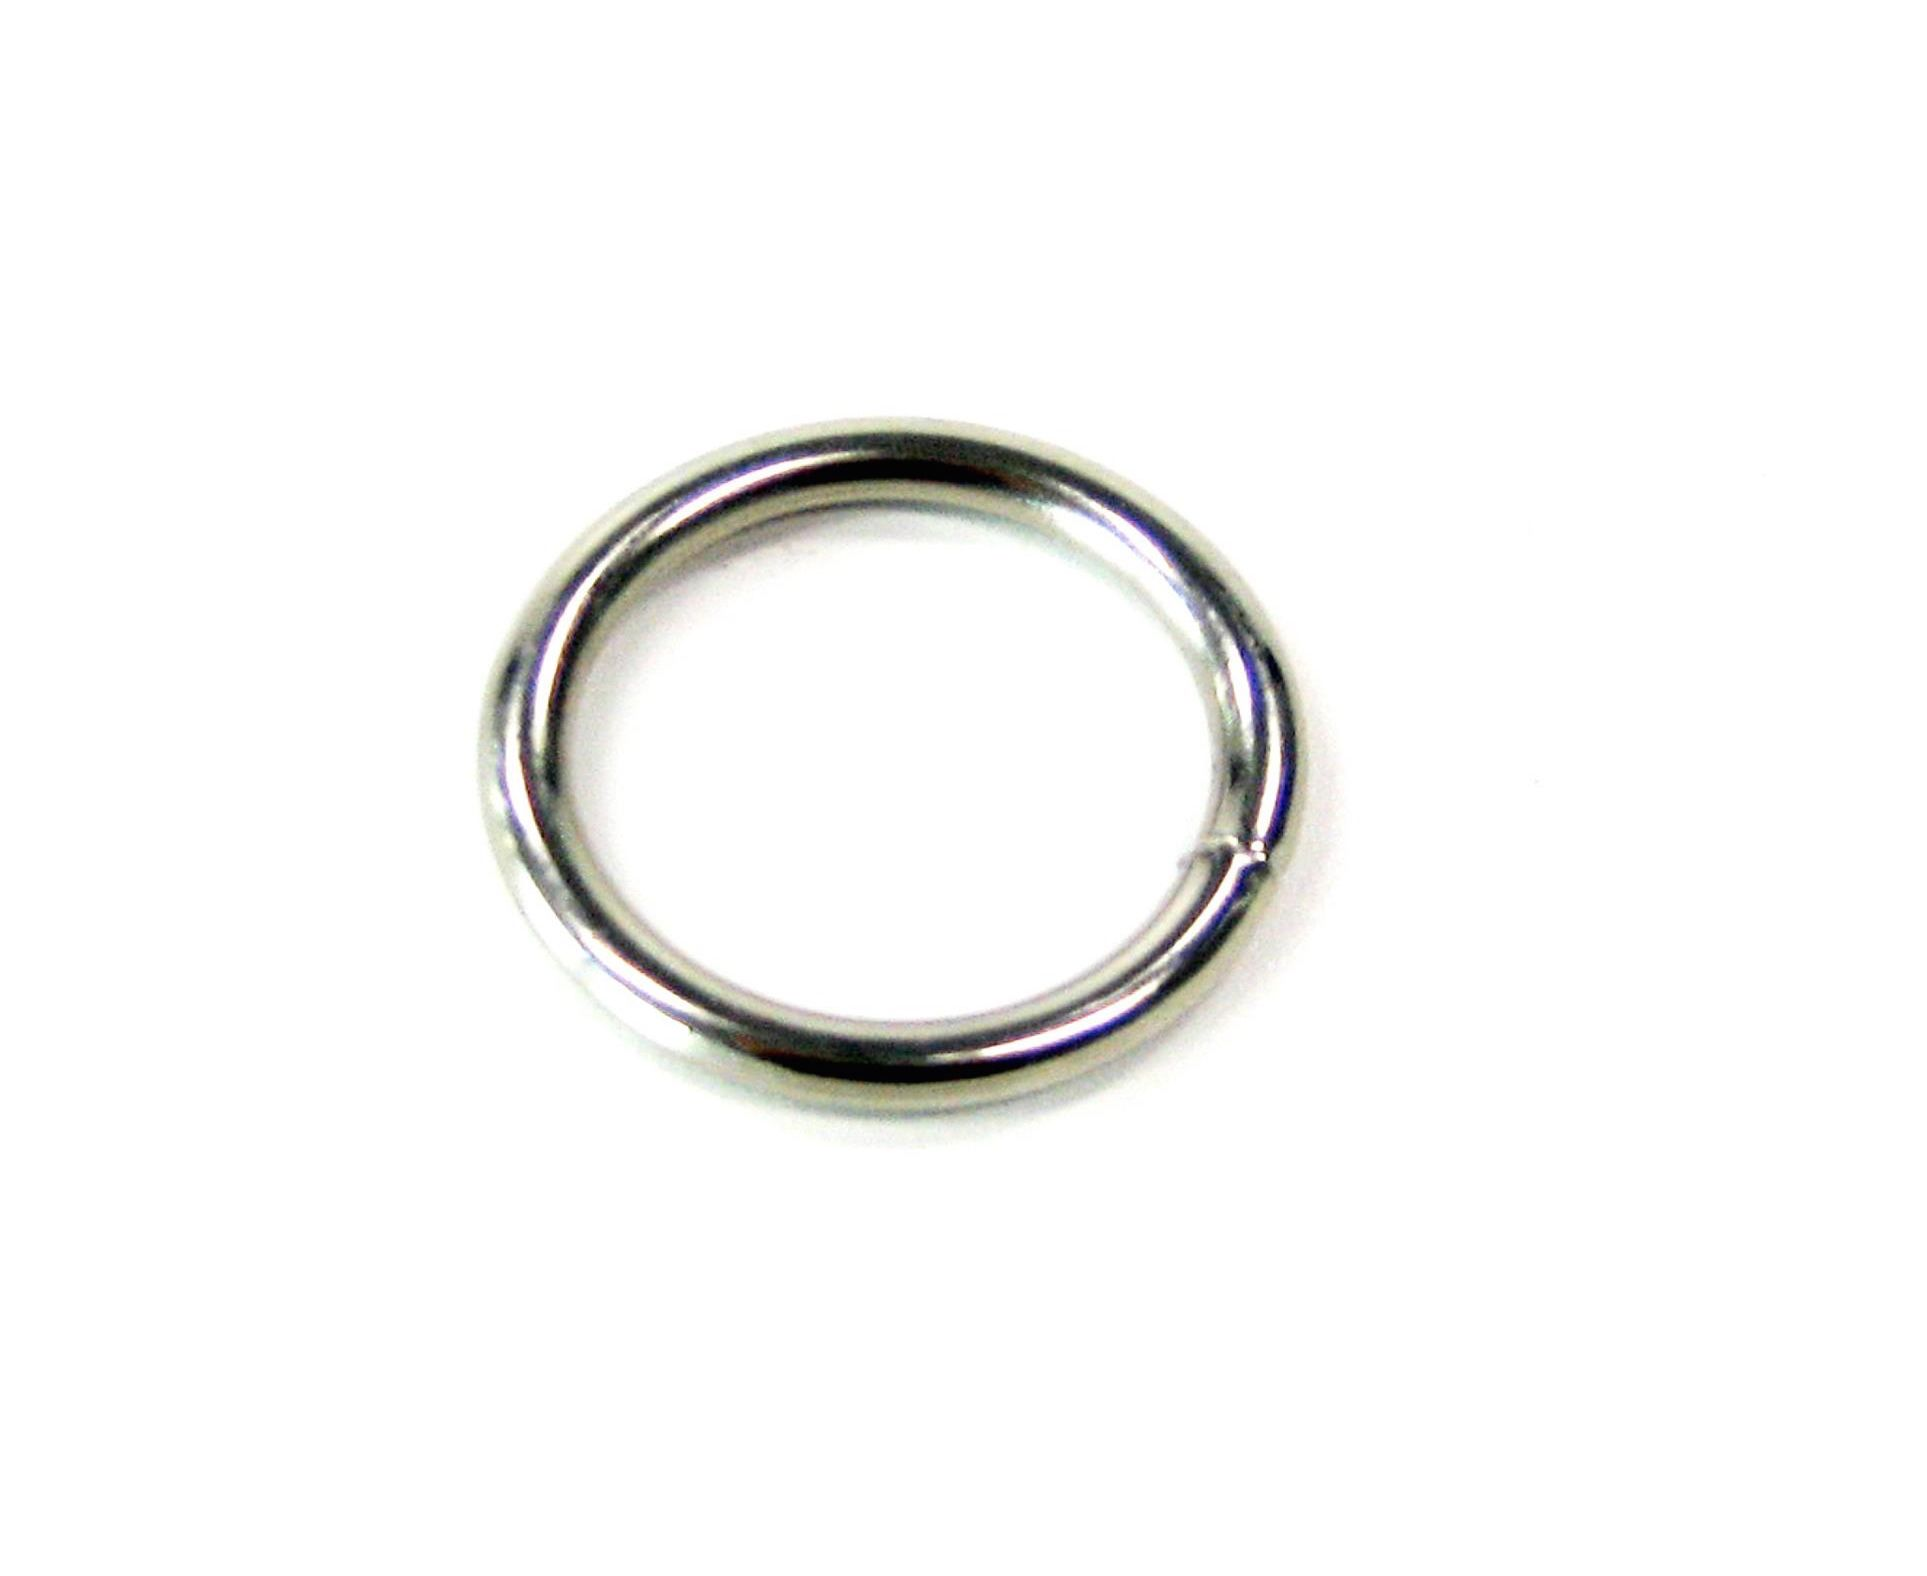 Ronde ring vernikkeld 20 x 3mm